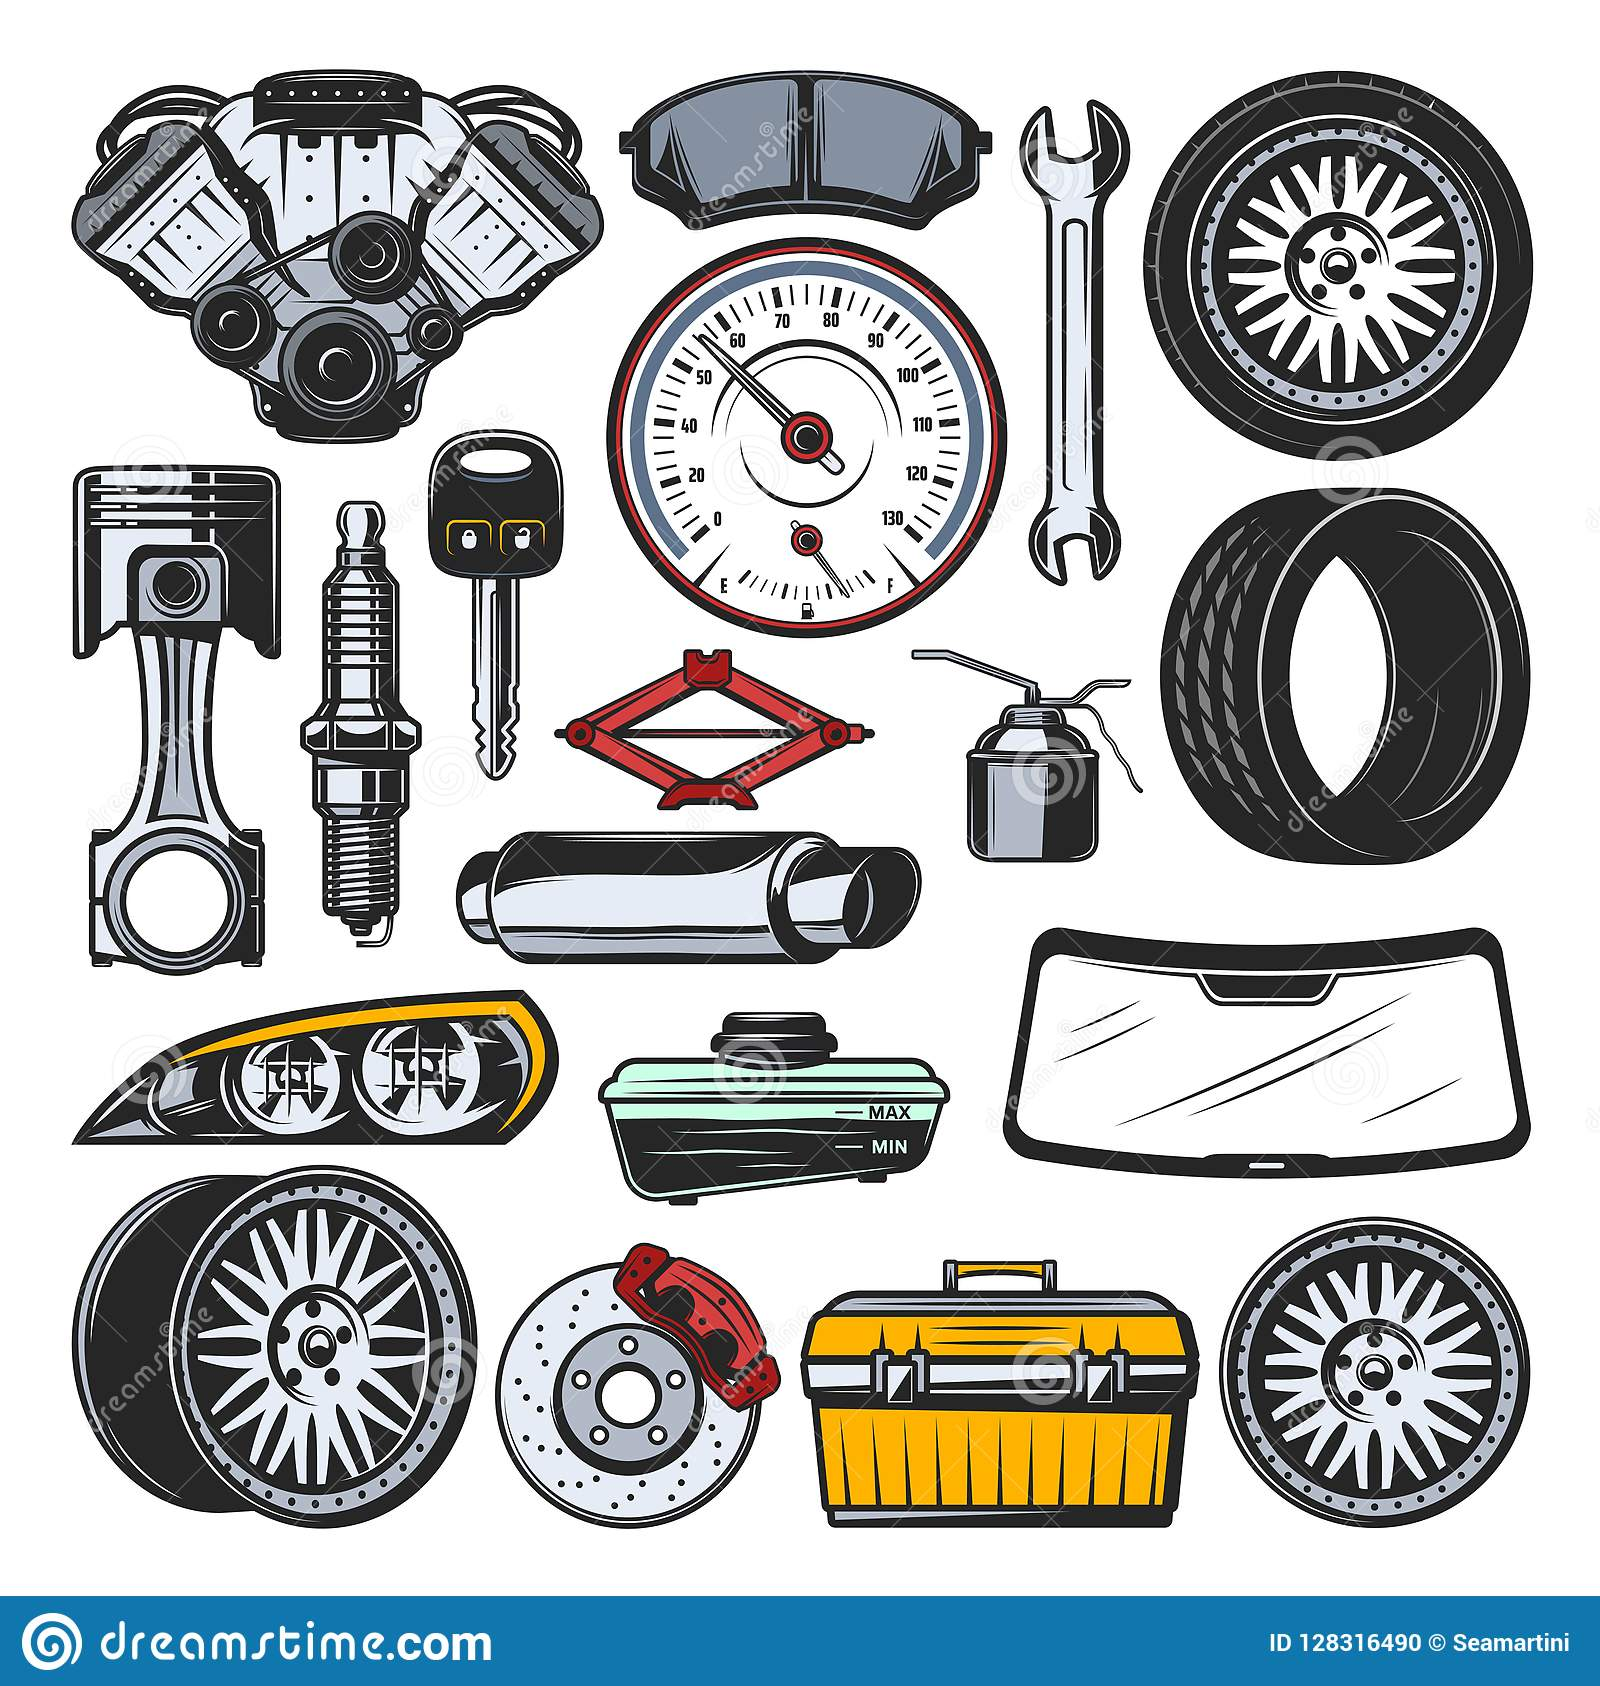 Car Auto Parts, Engine, Tires And Tools Stock Vector - Illustration